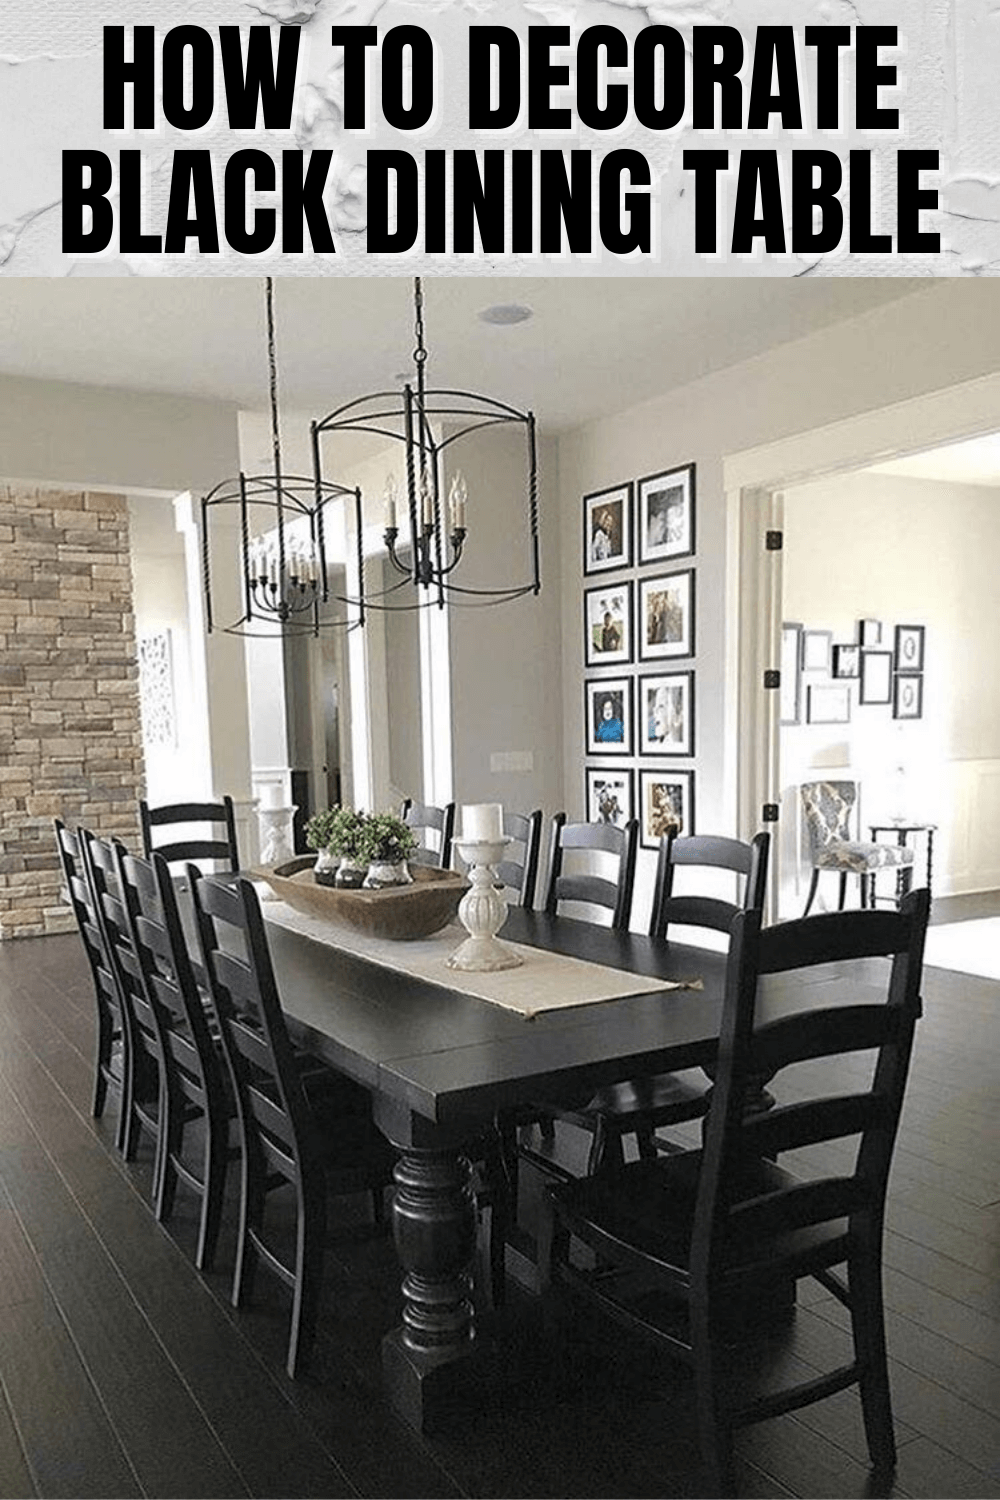 HOW TO DECORATE BLACK DINING TABLE